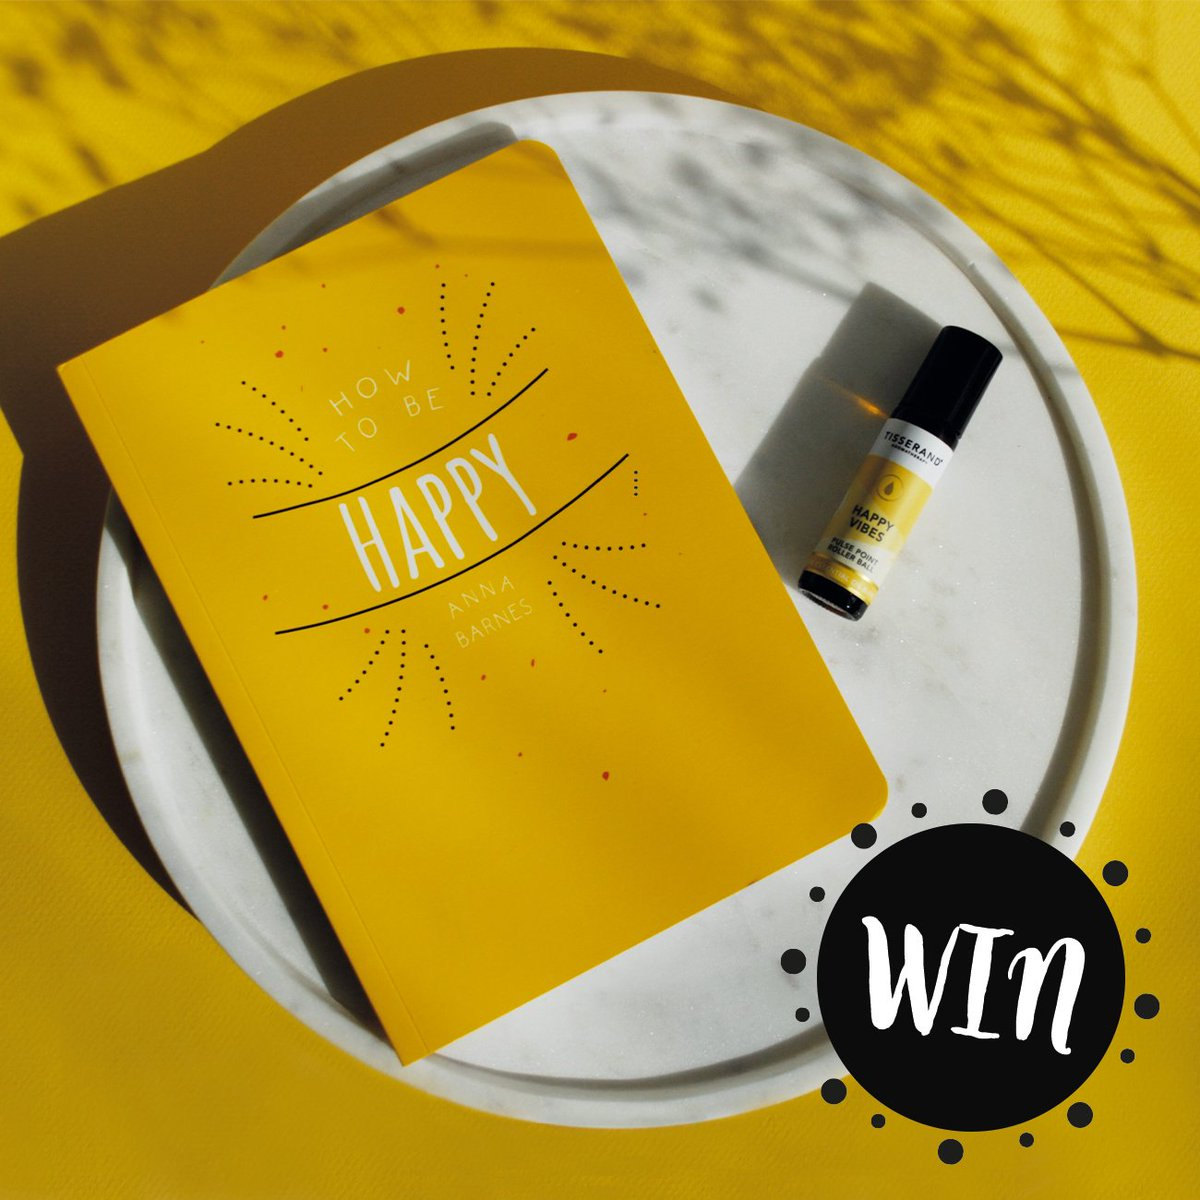 #CompetitionTime   This #internationaldayofhappiness we want to help turn up the joy by giving you the chance to #win 1 of 3 little bundles of sunshine    Simply RT and make sure you&#39;re following us &amp; @Summersdale to enter. UK only. Ends 9am 22.3.19 <br>http://pic.twitter.com/uB2SFErAHK